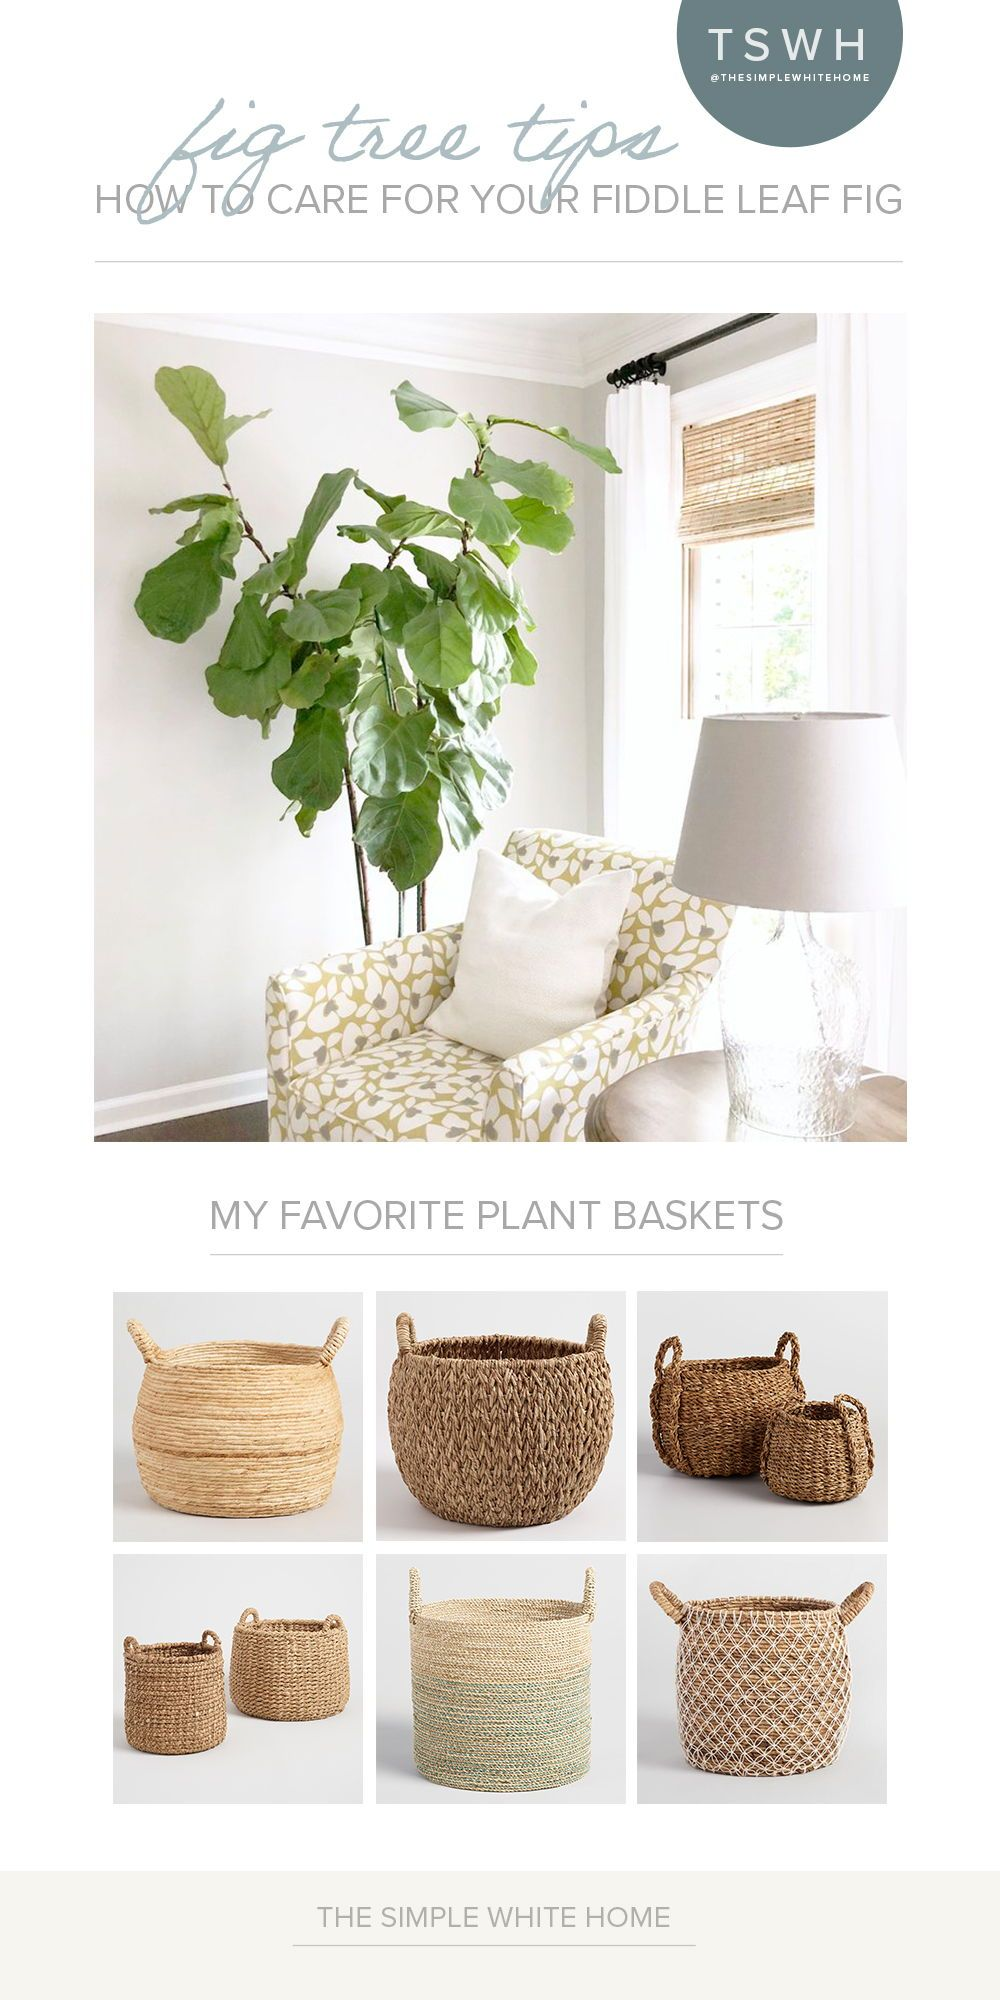 If you know me, you know I'm pretty obsessed with my fiddle leaf fig trees. I would have one in every room if I had the right light. I'm definitely no horticulturist but have learned how to take care of these little babies over the years and wanted to share some of my favorite tips. I really hope they help you start to love your fig instead of being intimidated by their finicky ways. #figtree #fiddleleaffig #fiddleleaffigtree #fiddlefig #fiddleleaf #fiddlefigtree #plants #houseplants